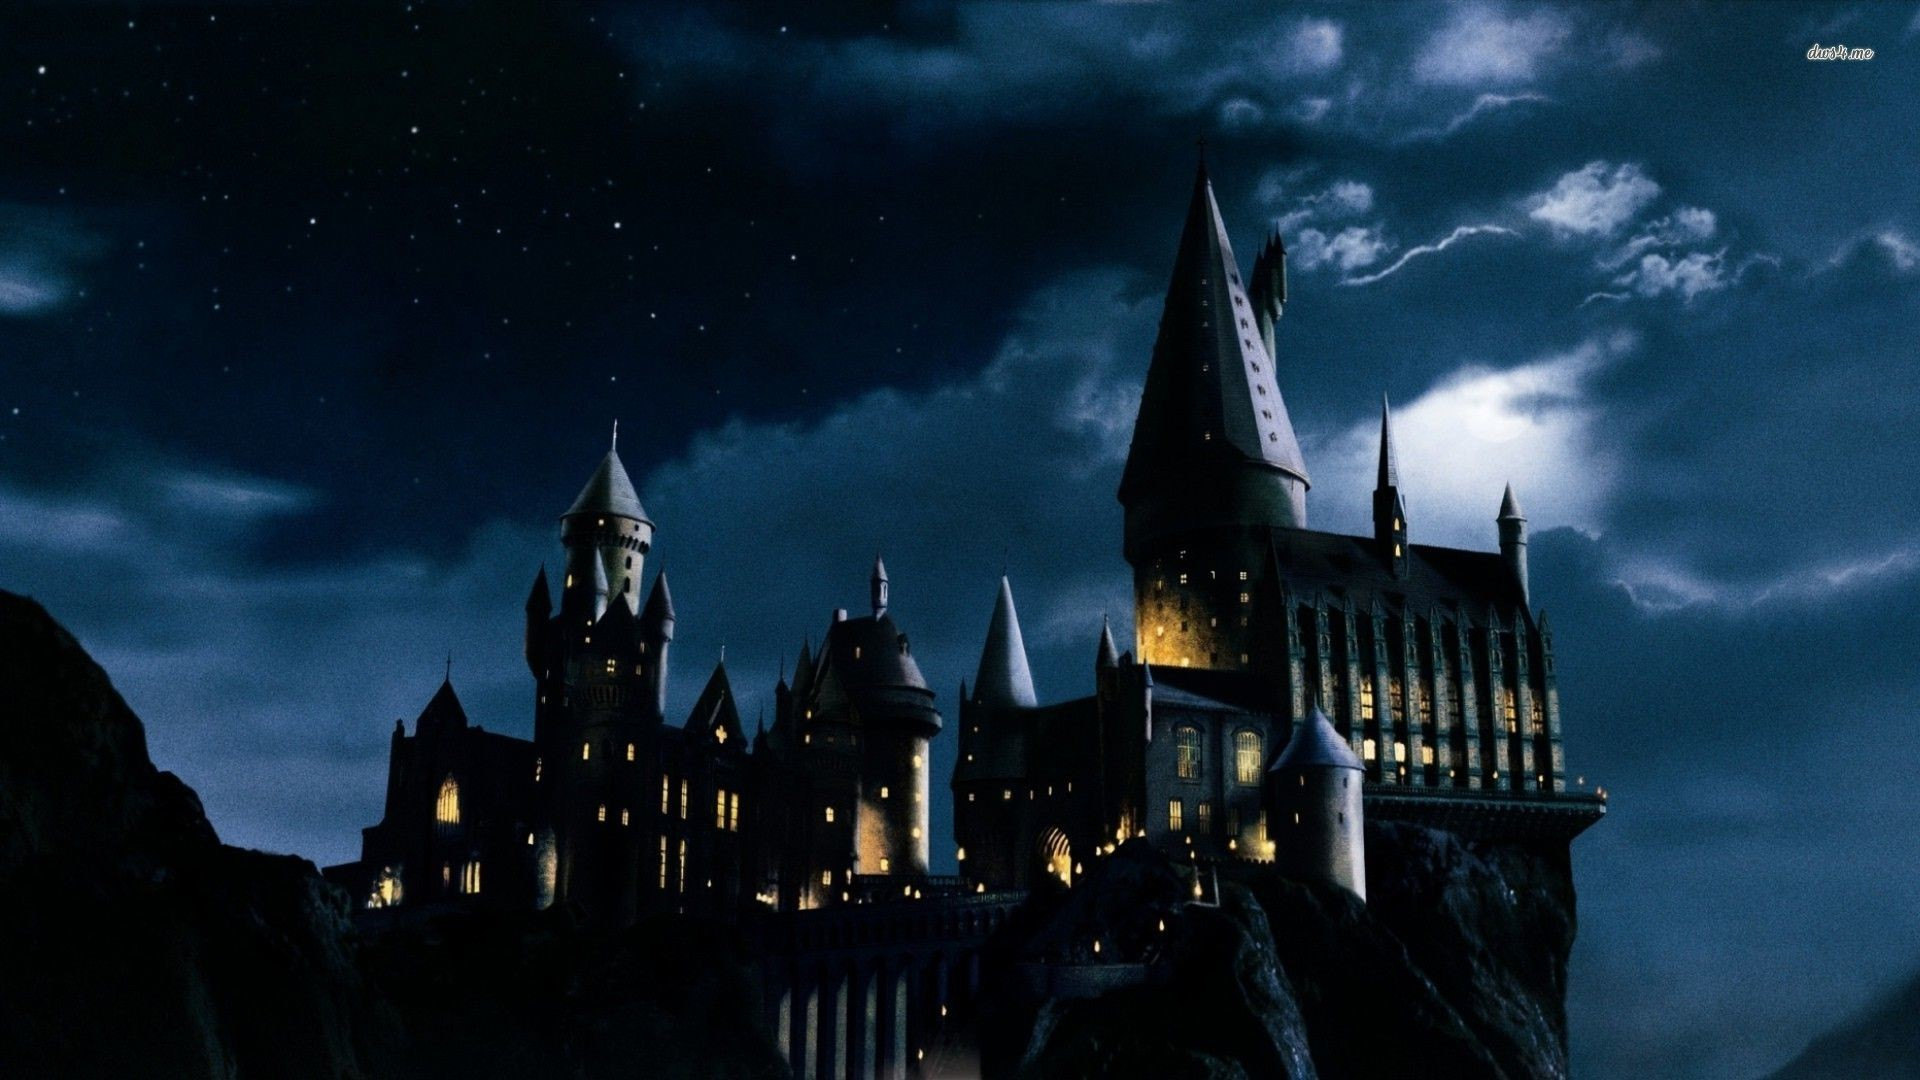 1920x1080 Hogwarts Castle Wallpapers - Wallpaper Cave